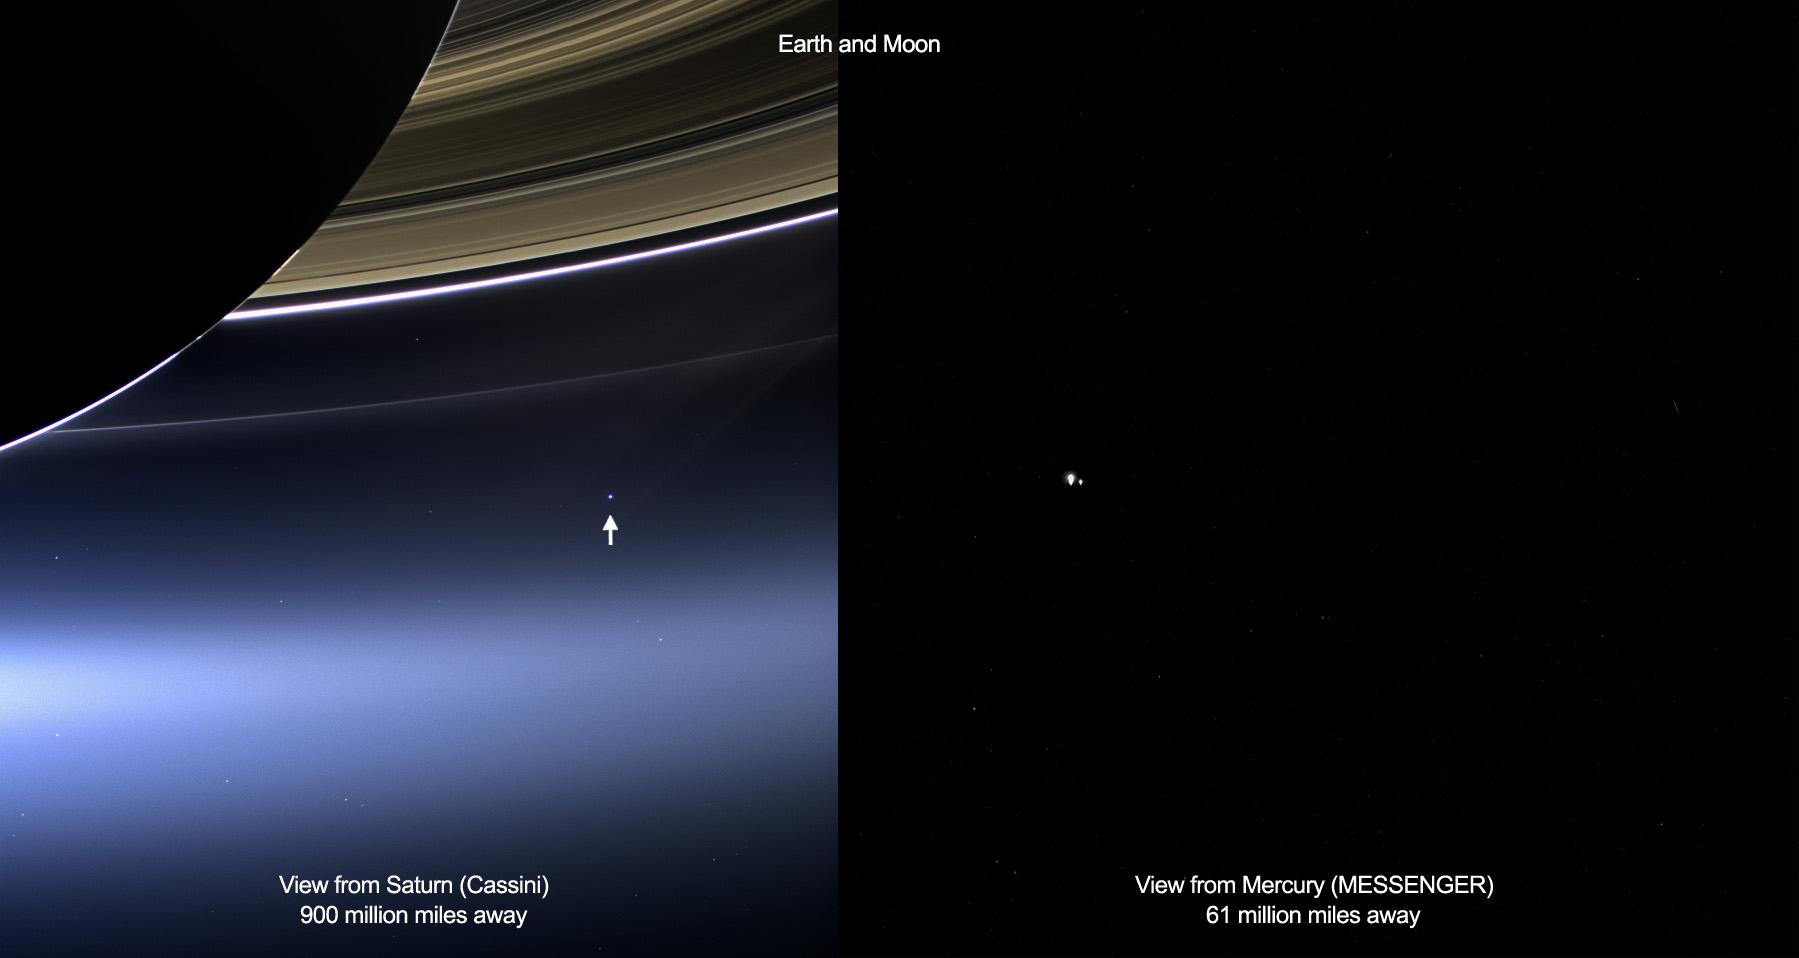 These images show views of Earth and the moon from NASA's Cassini (left) and MESSENGER spacecraft (right) from July 19, 2013.